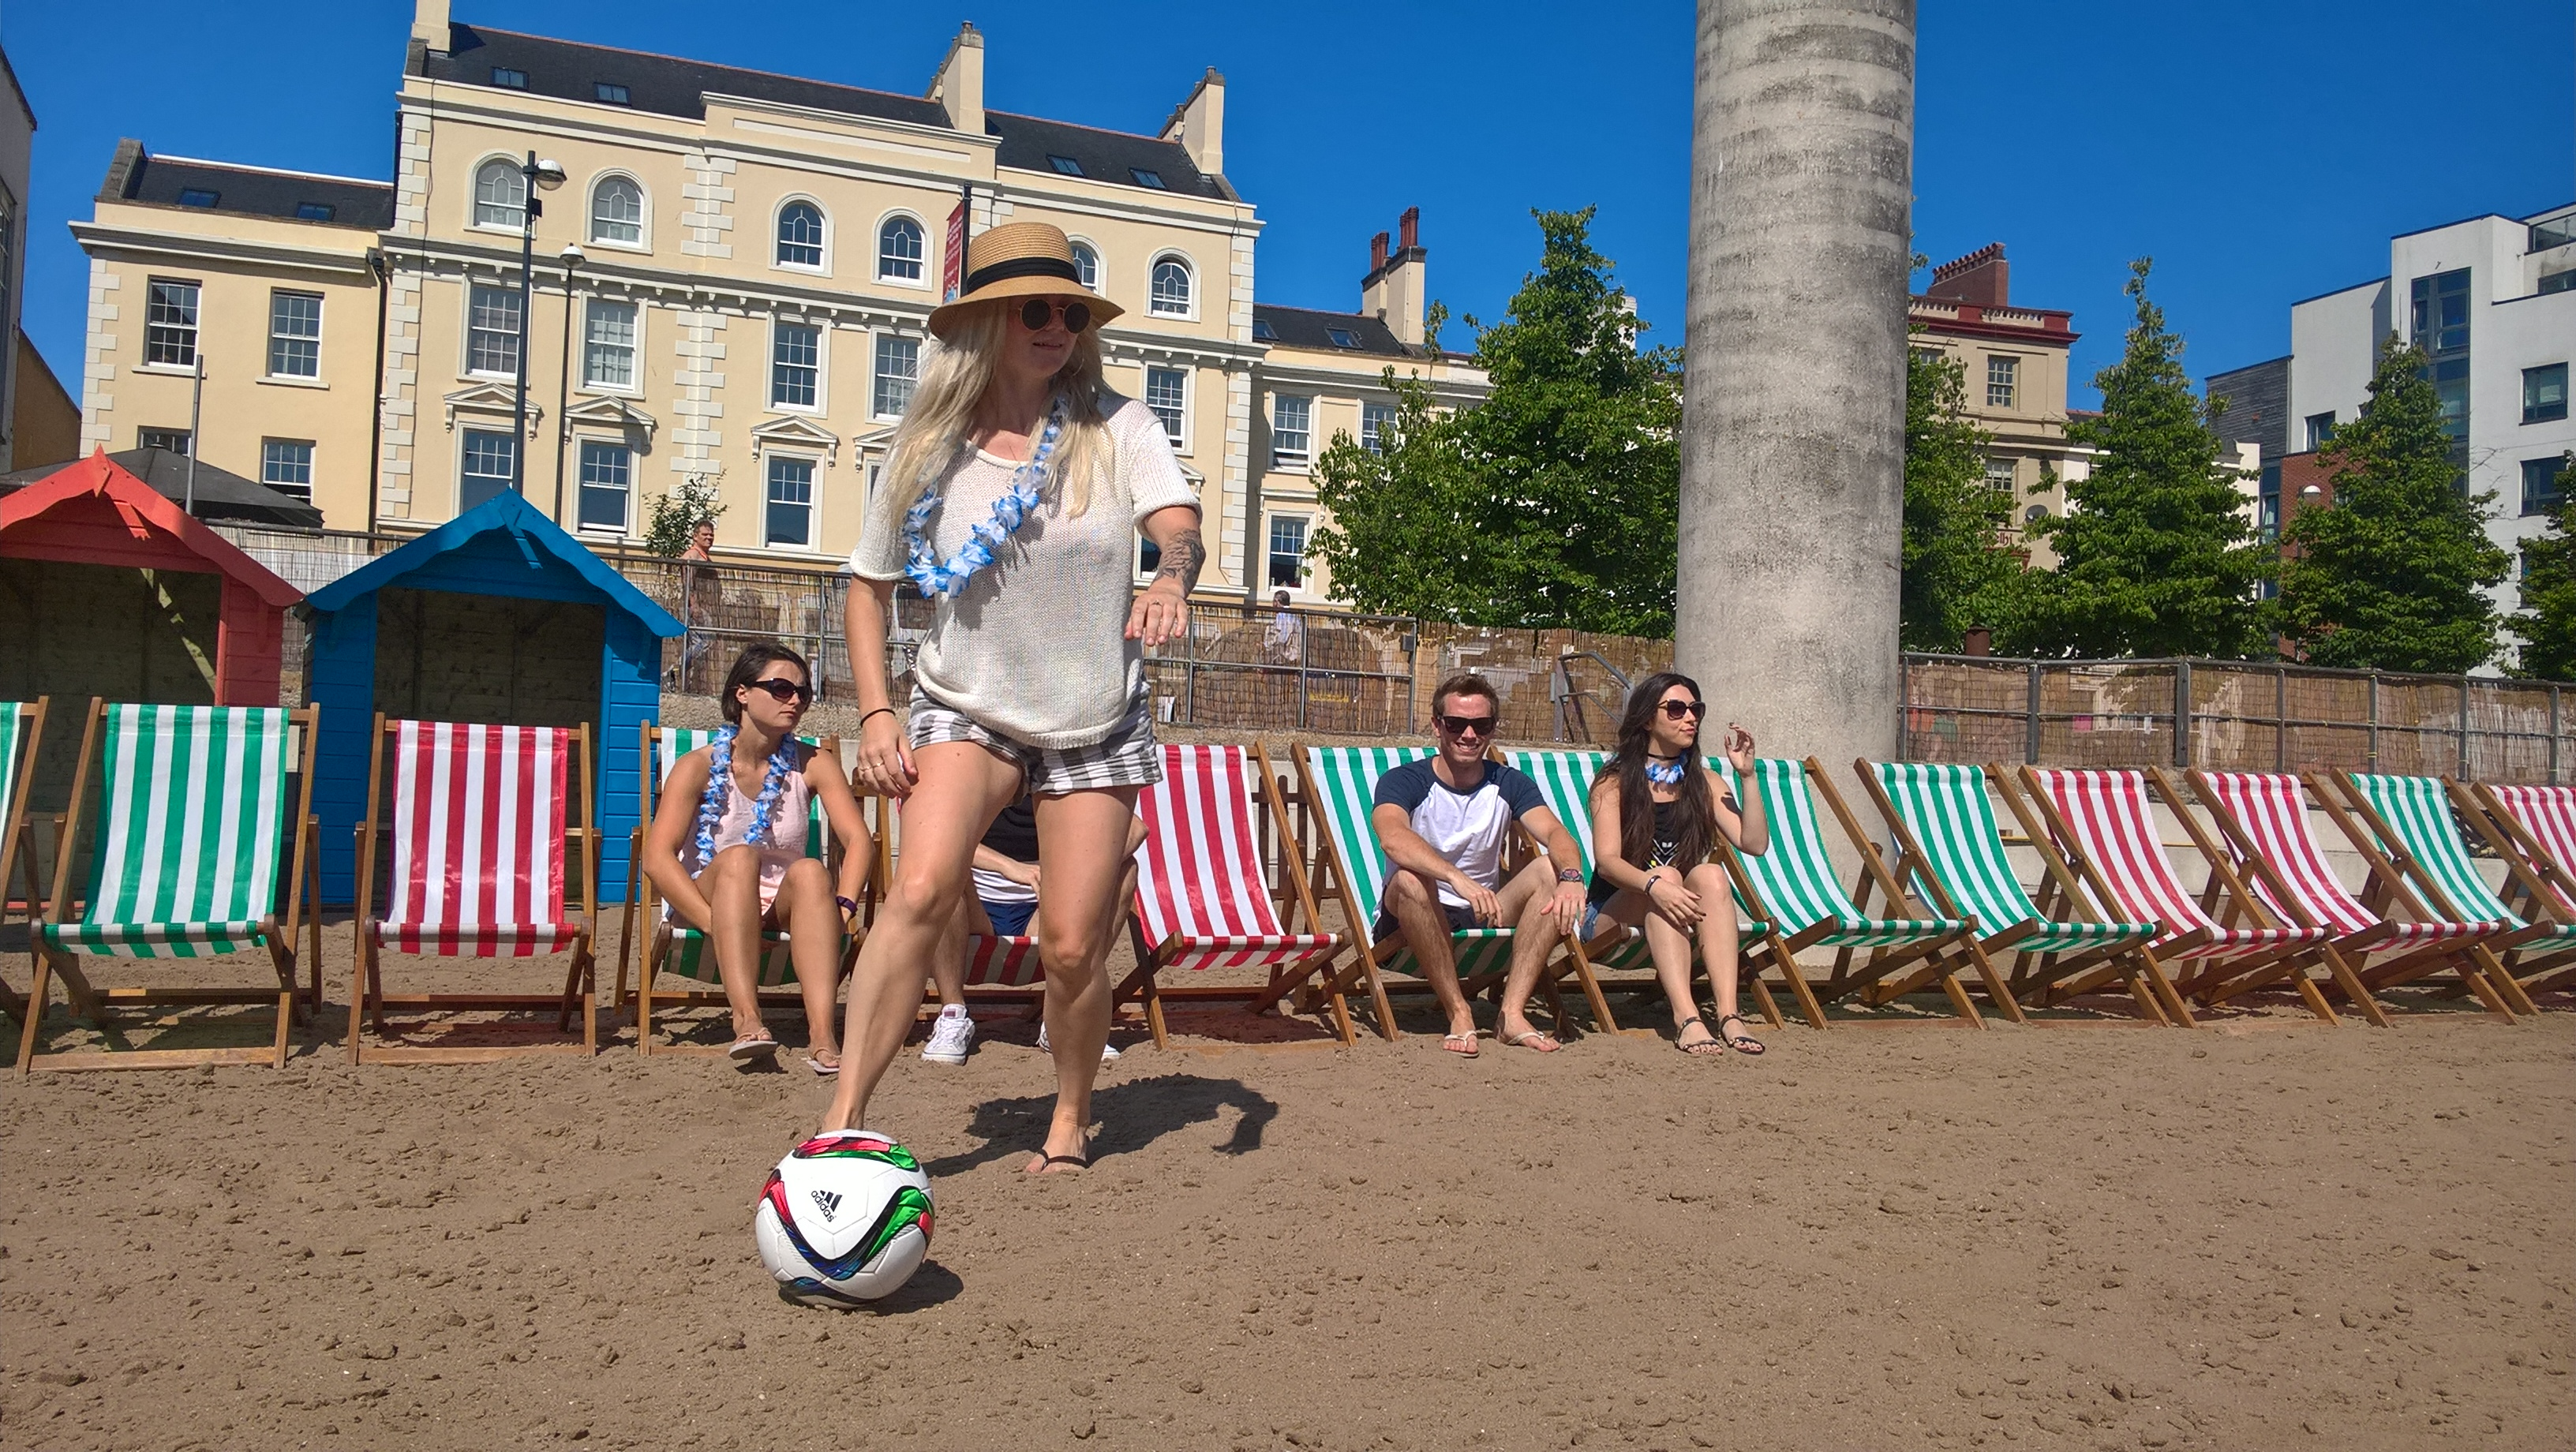 So who's up for the Cardiff Bay Beach Beatball Barbecue?